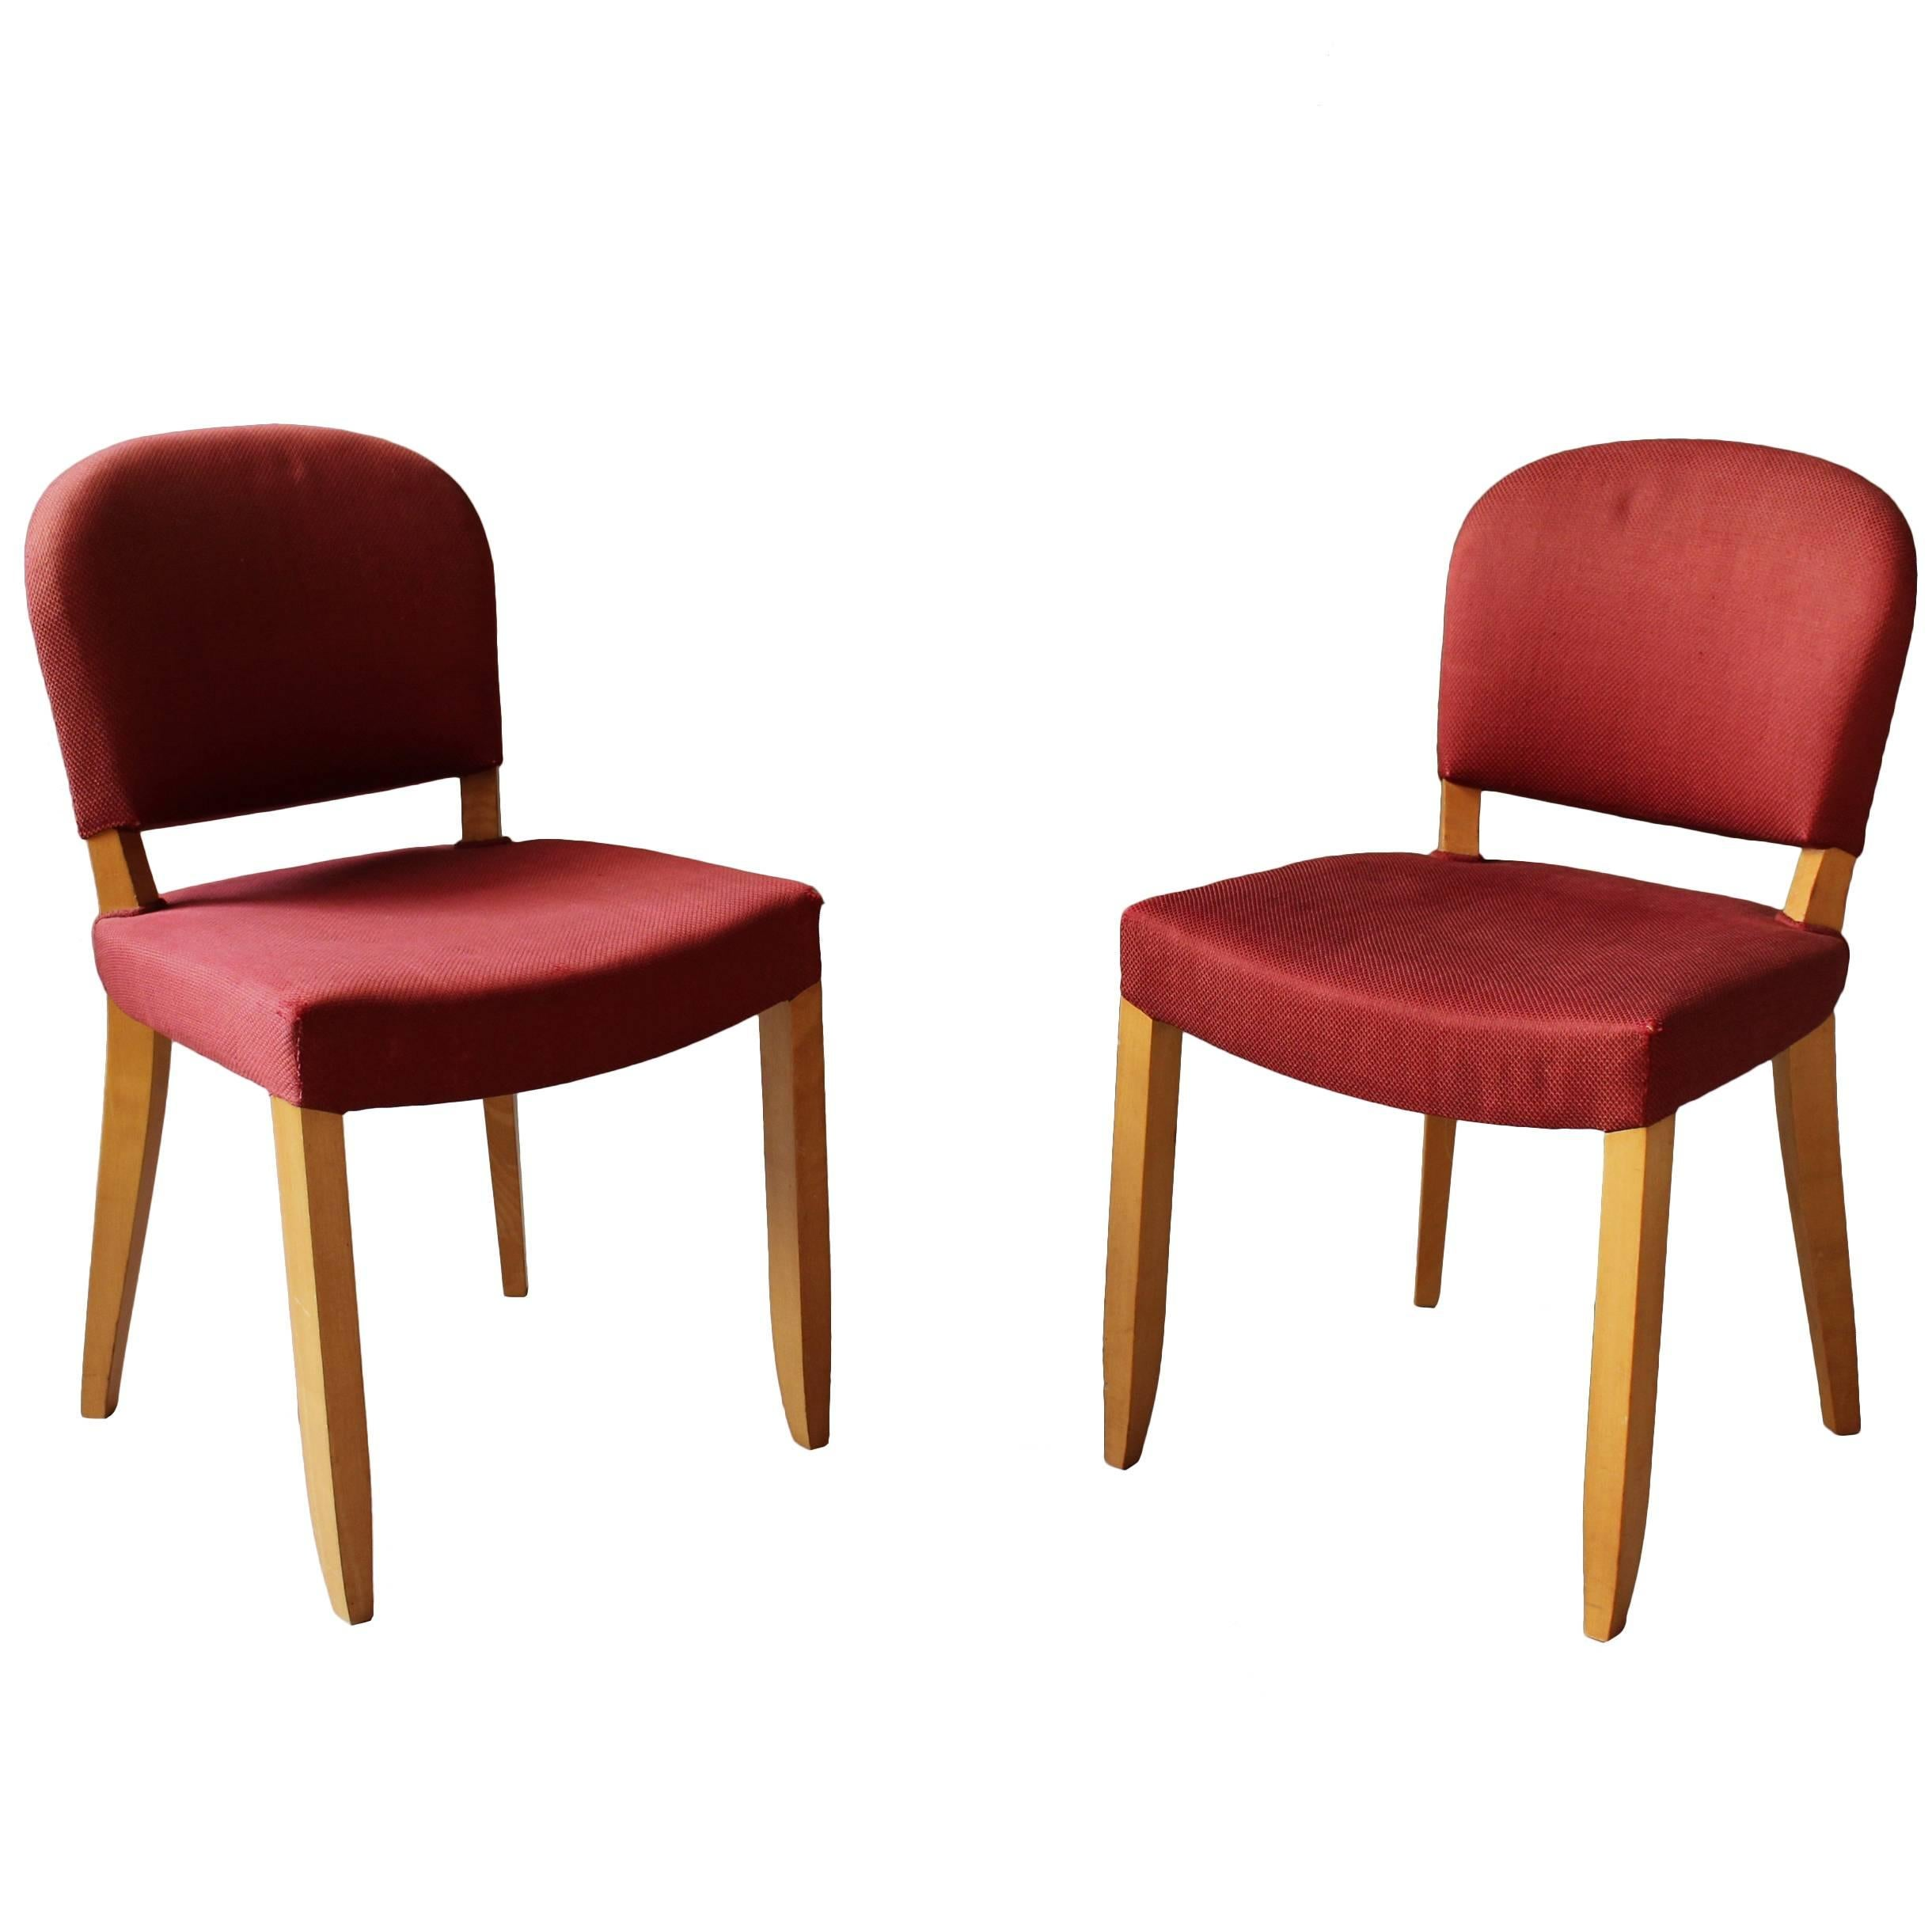 Pair of Fine French Art Deco Sycamore Chairs by Leleu